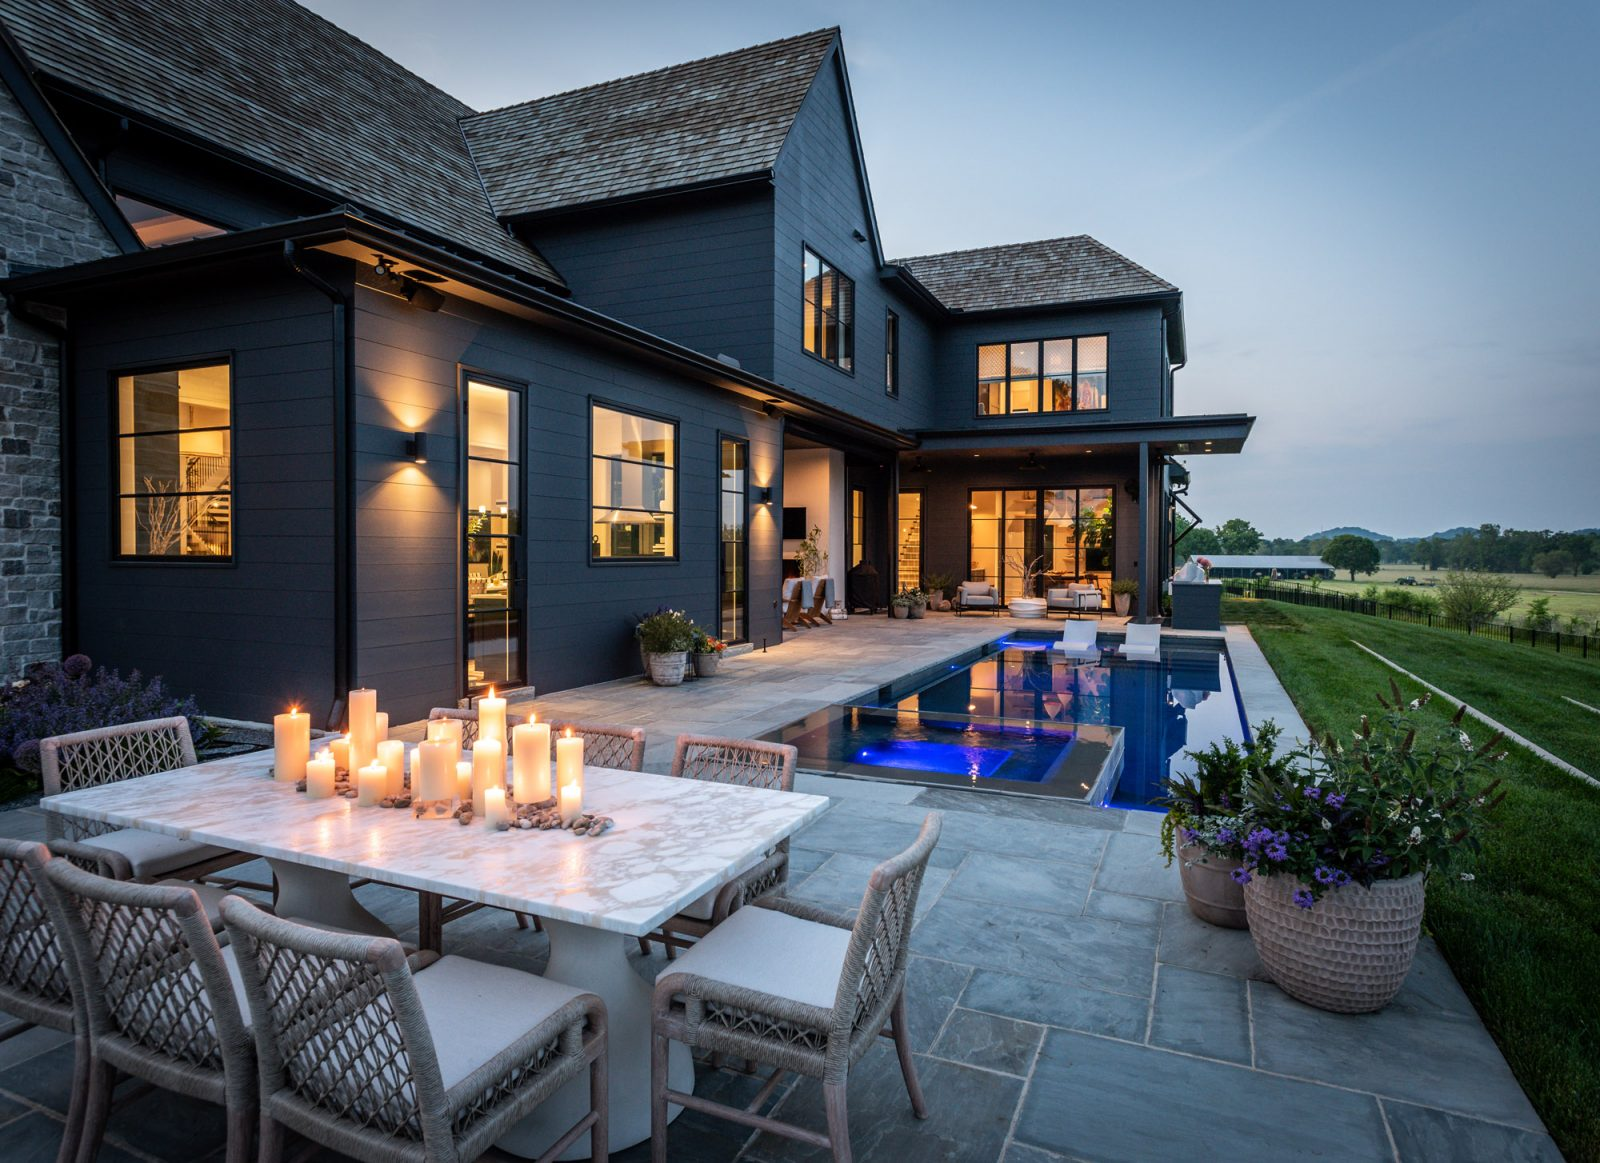 outdoor dinner table rondo pool backyard inspiration Covered patio outdoor design by marie-joe bouffard of jfy designs